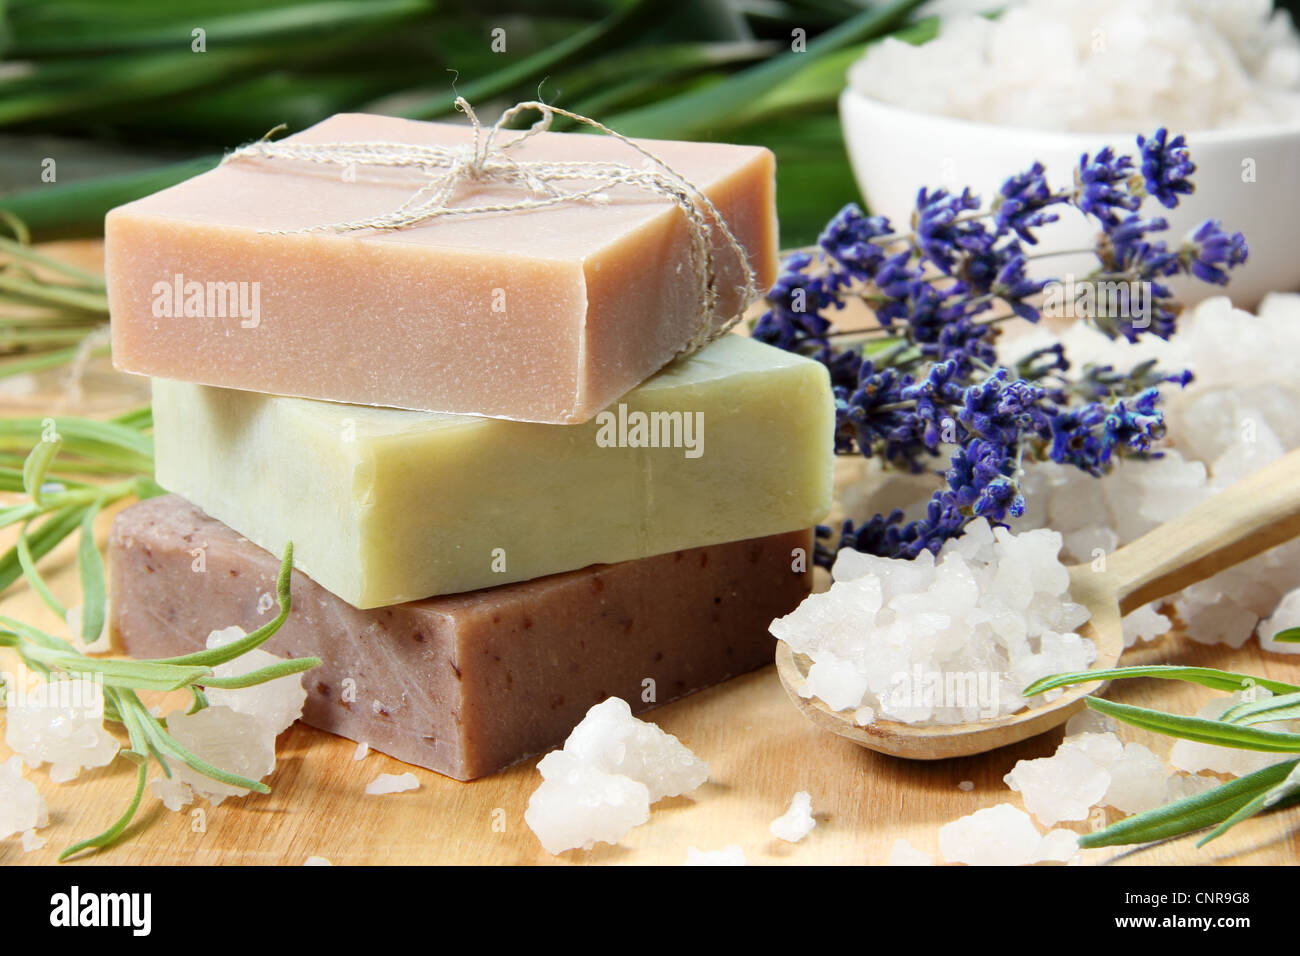 Homemade Soap with Lavender Flowers and Sea Salt - Stock Image